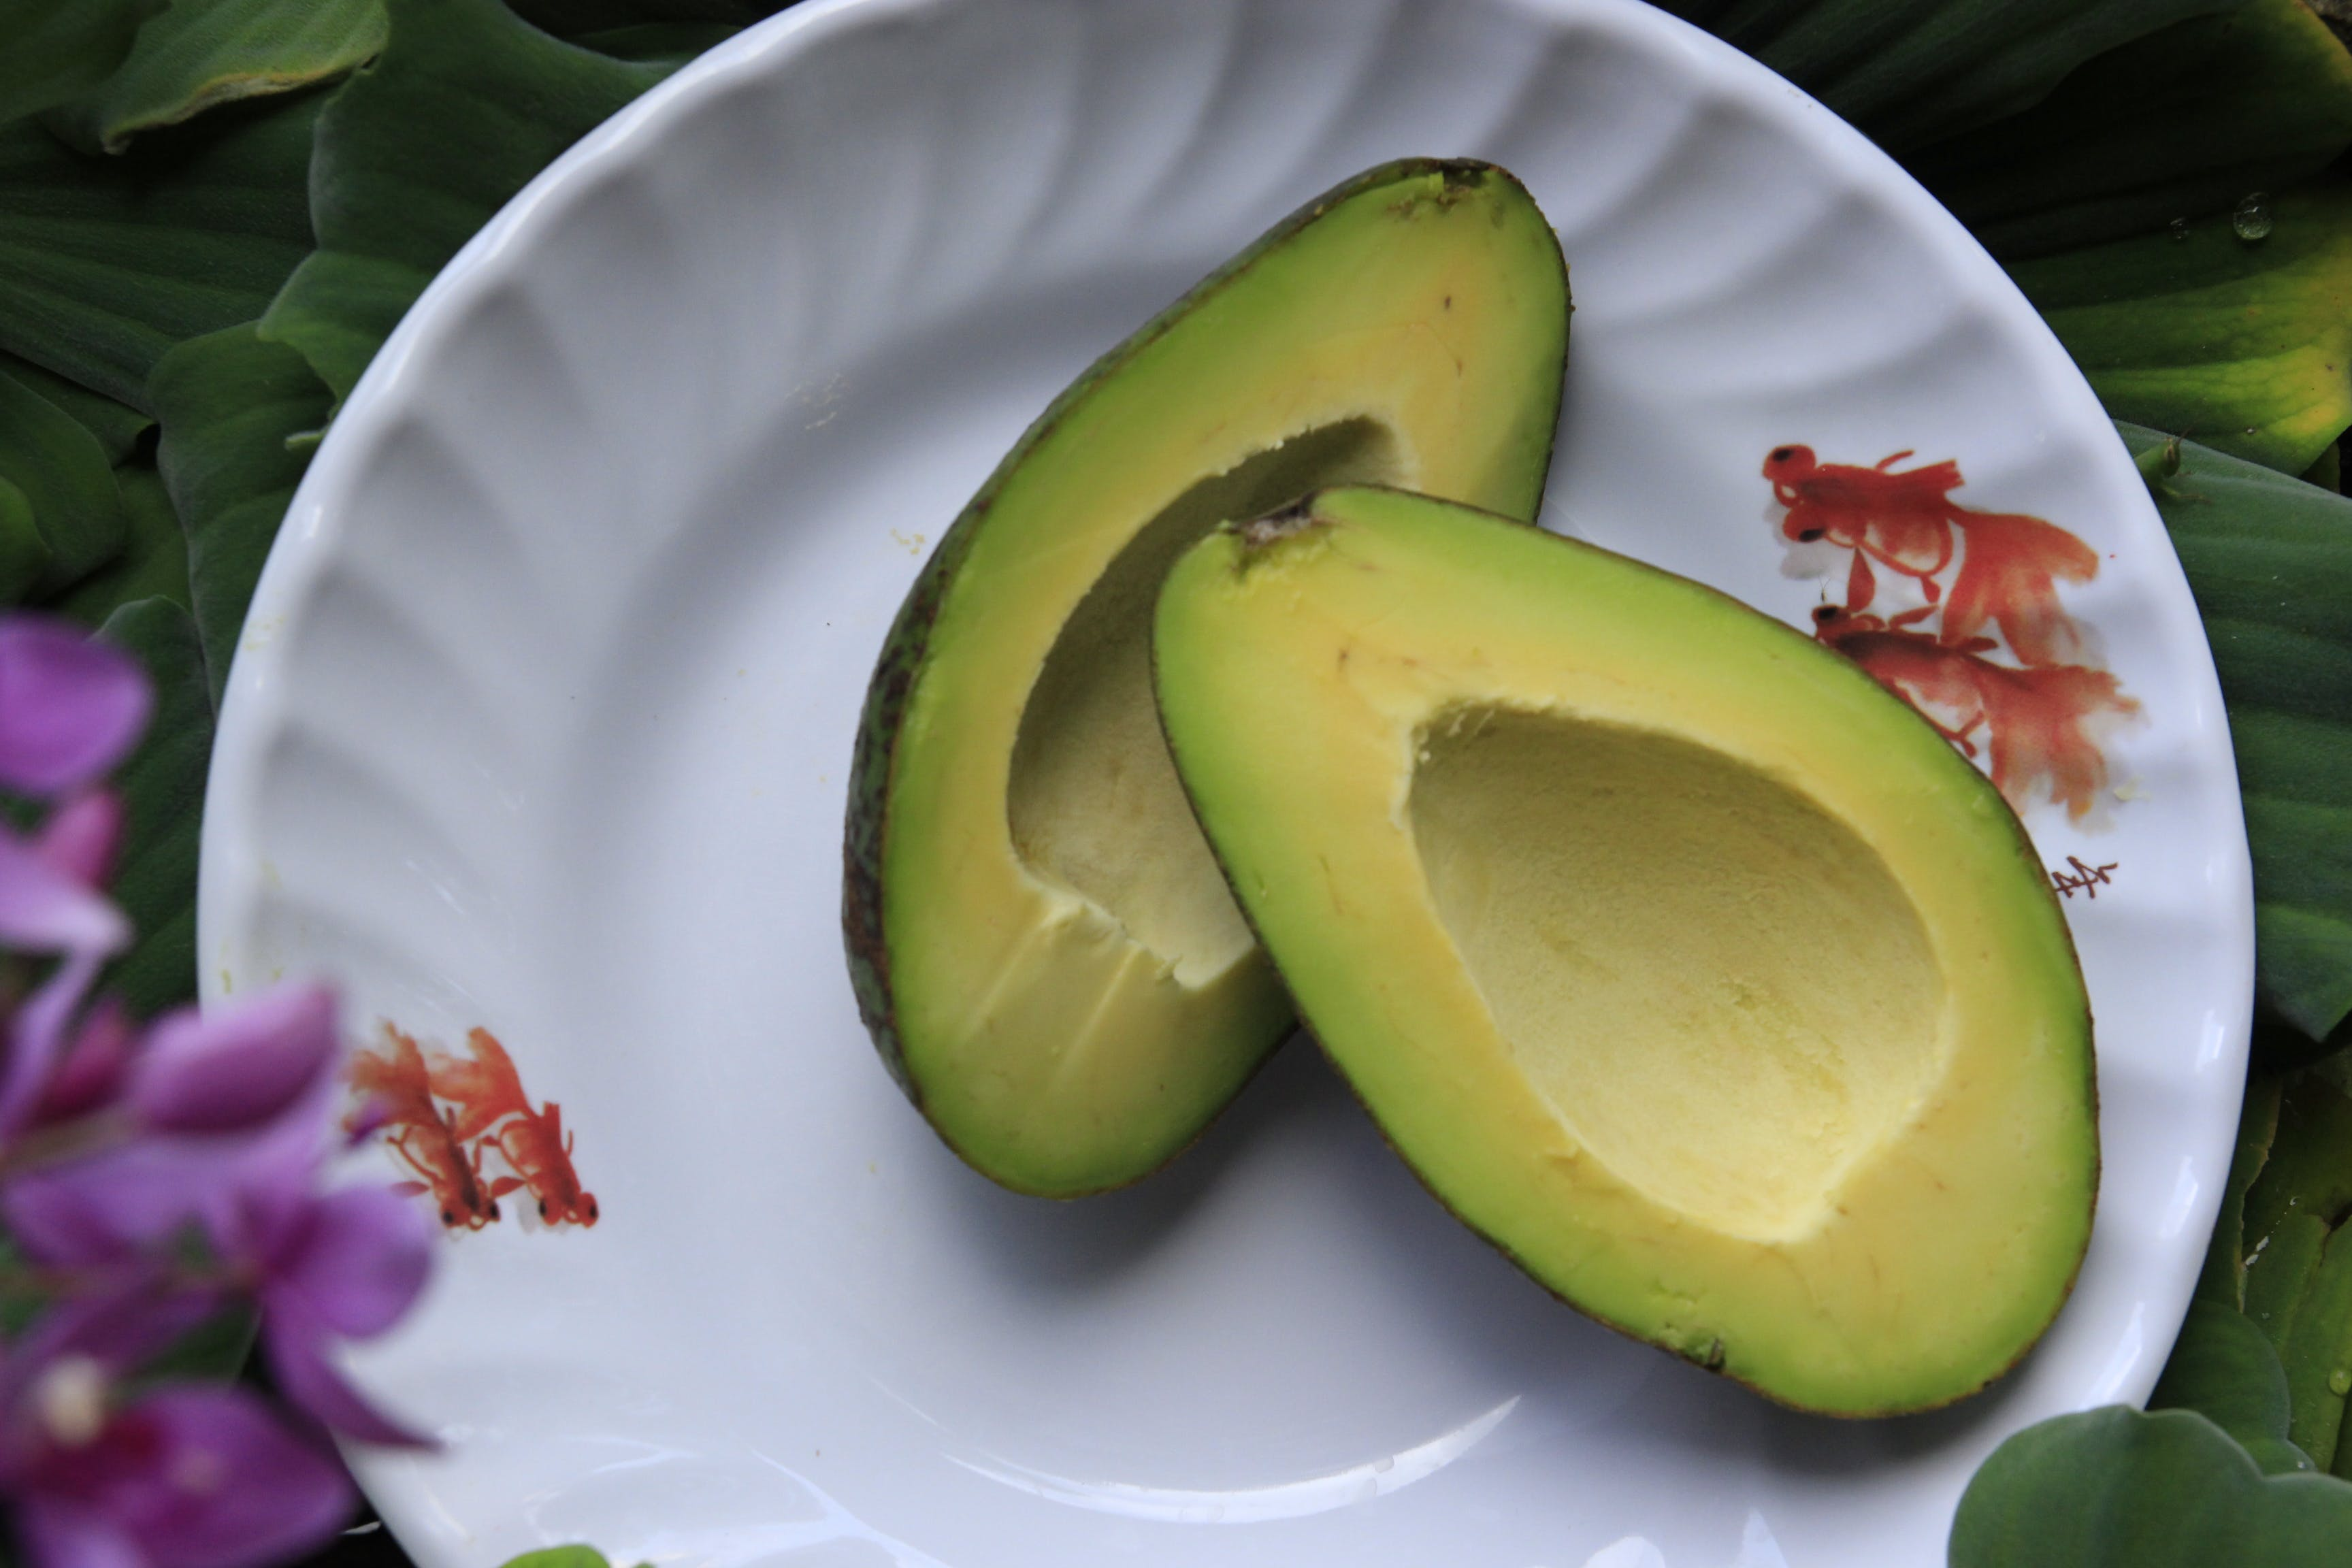 Sliced Avocado Fruits on Round White Ceramic Plate